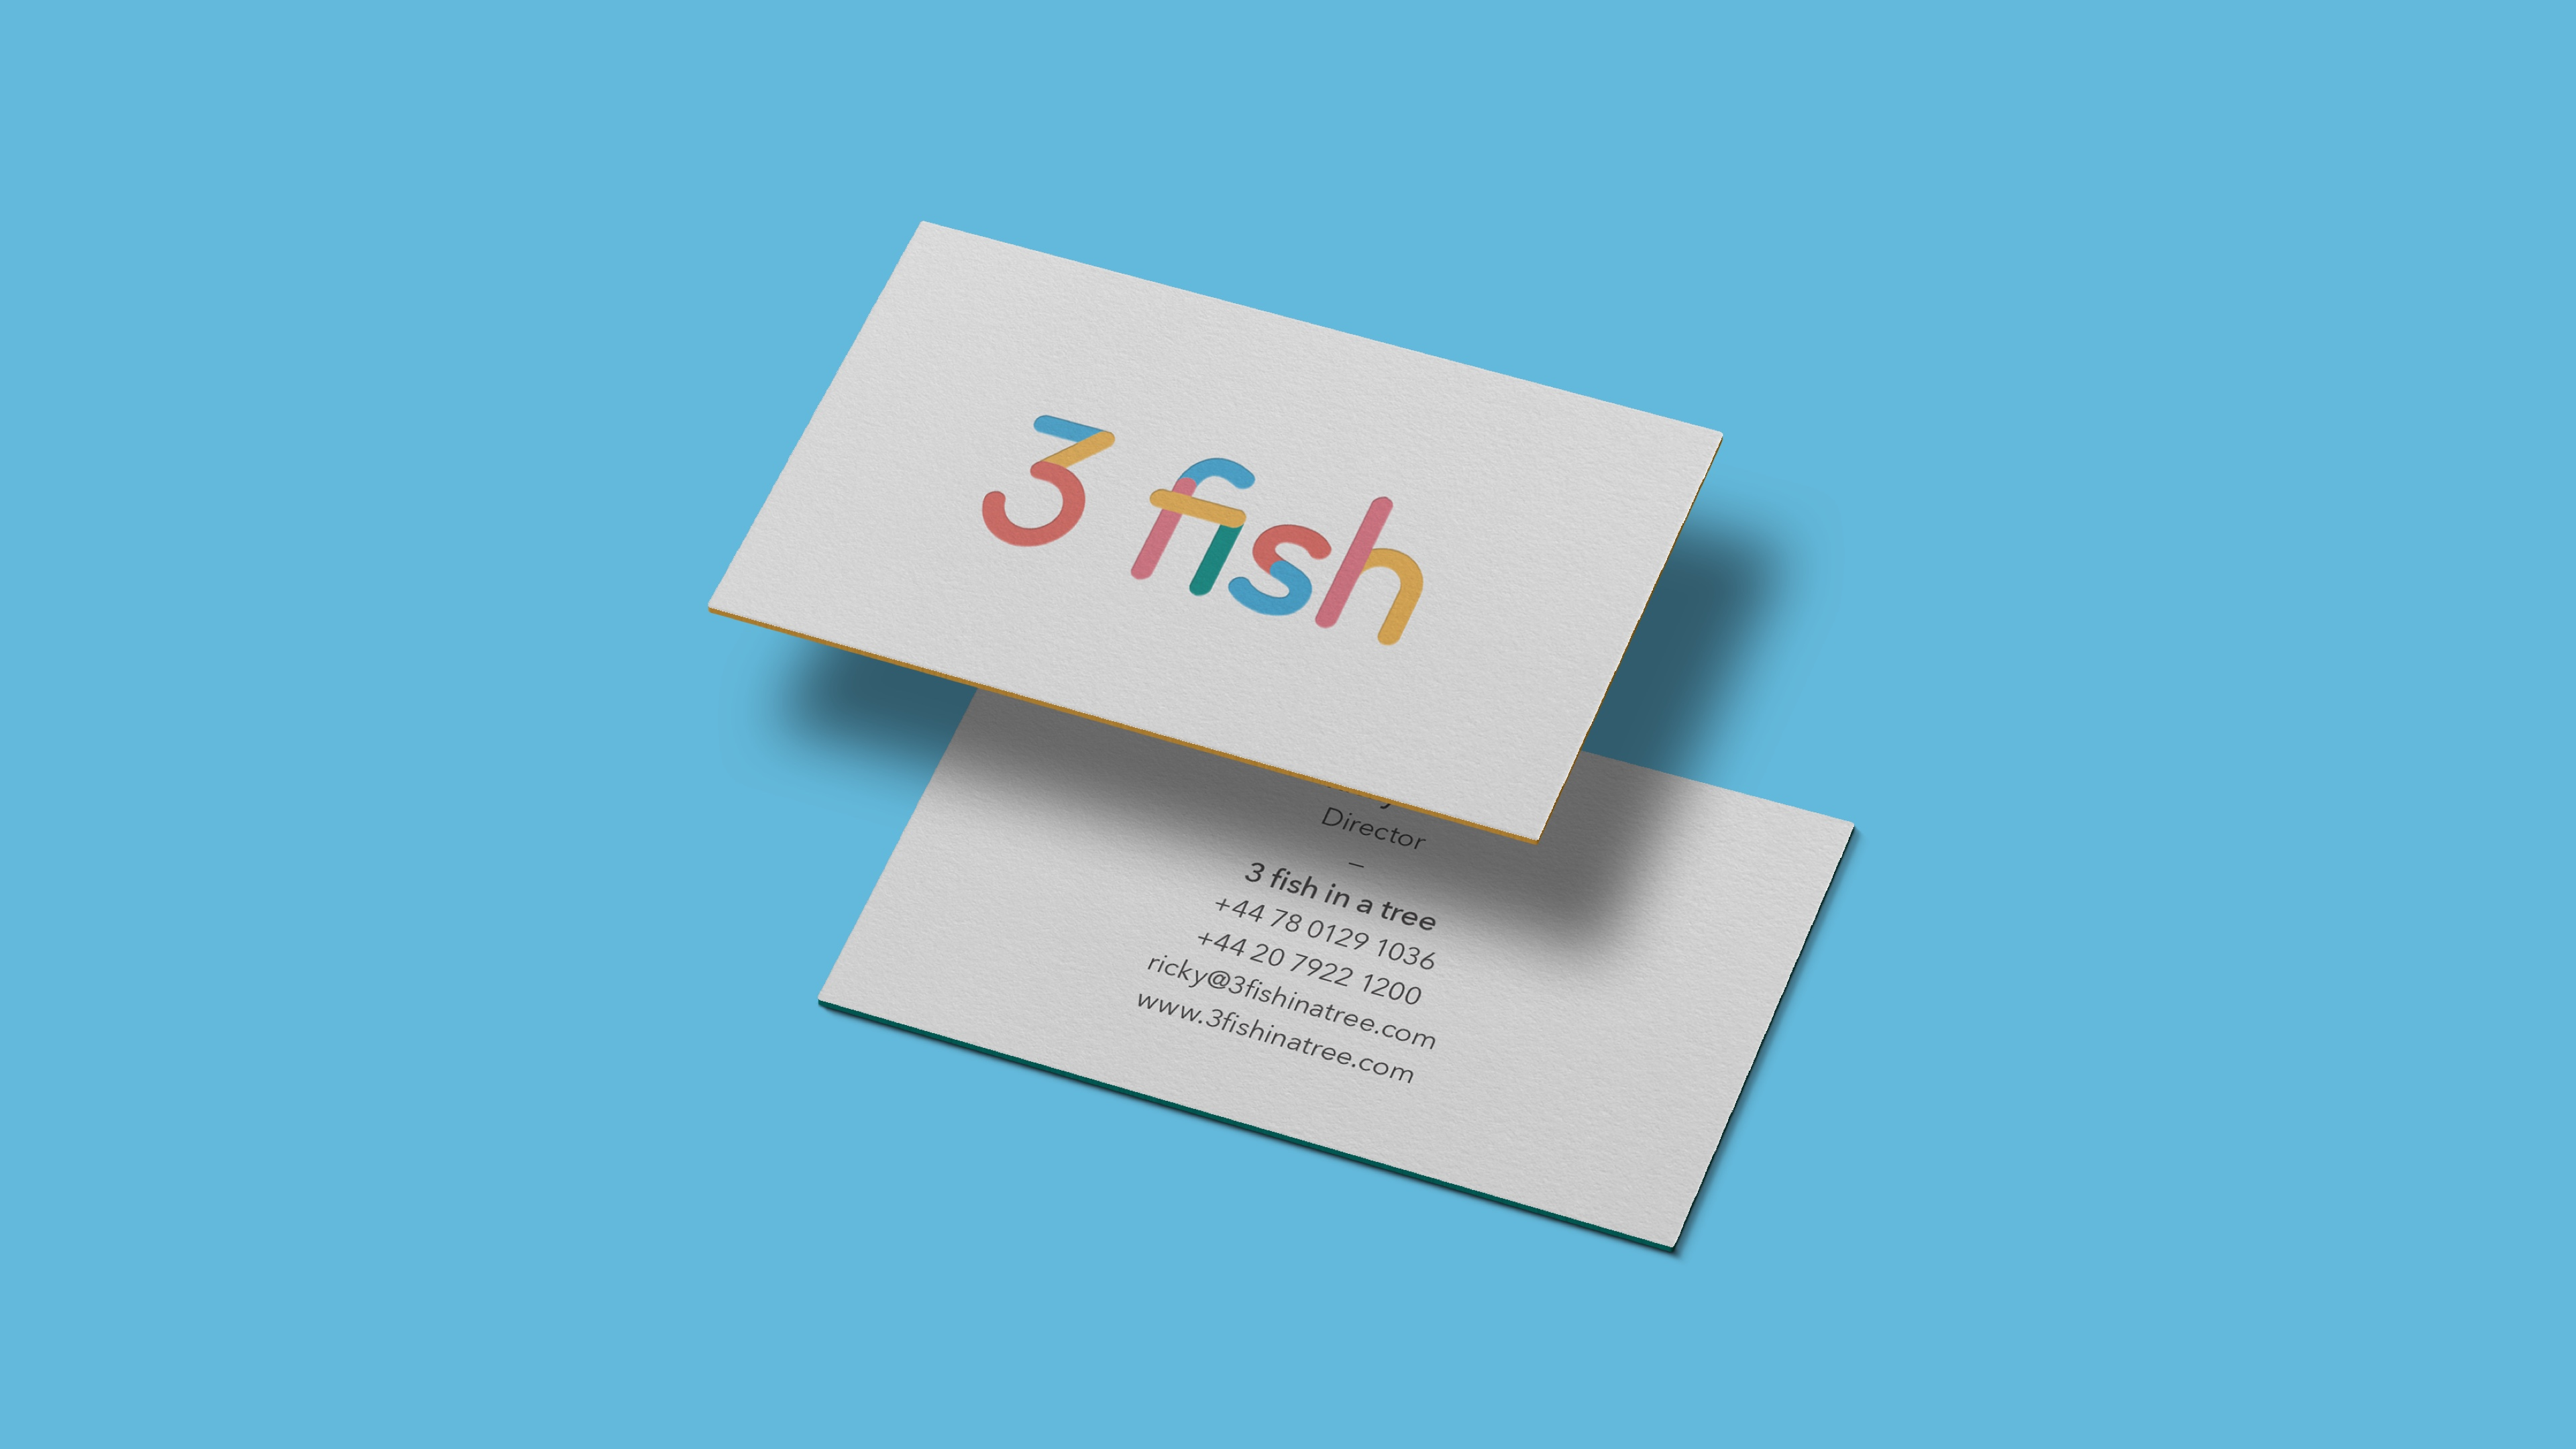 Philip_Mawer_3_fish_08